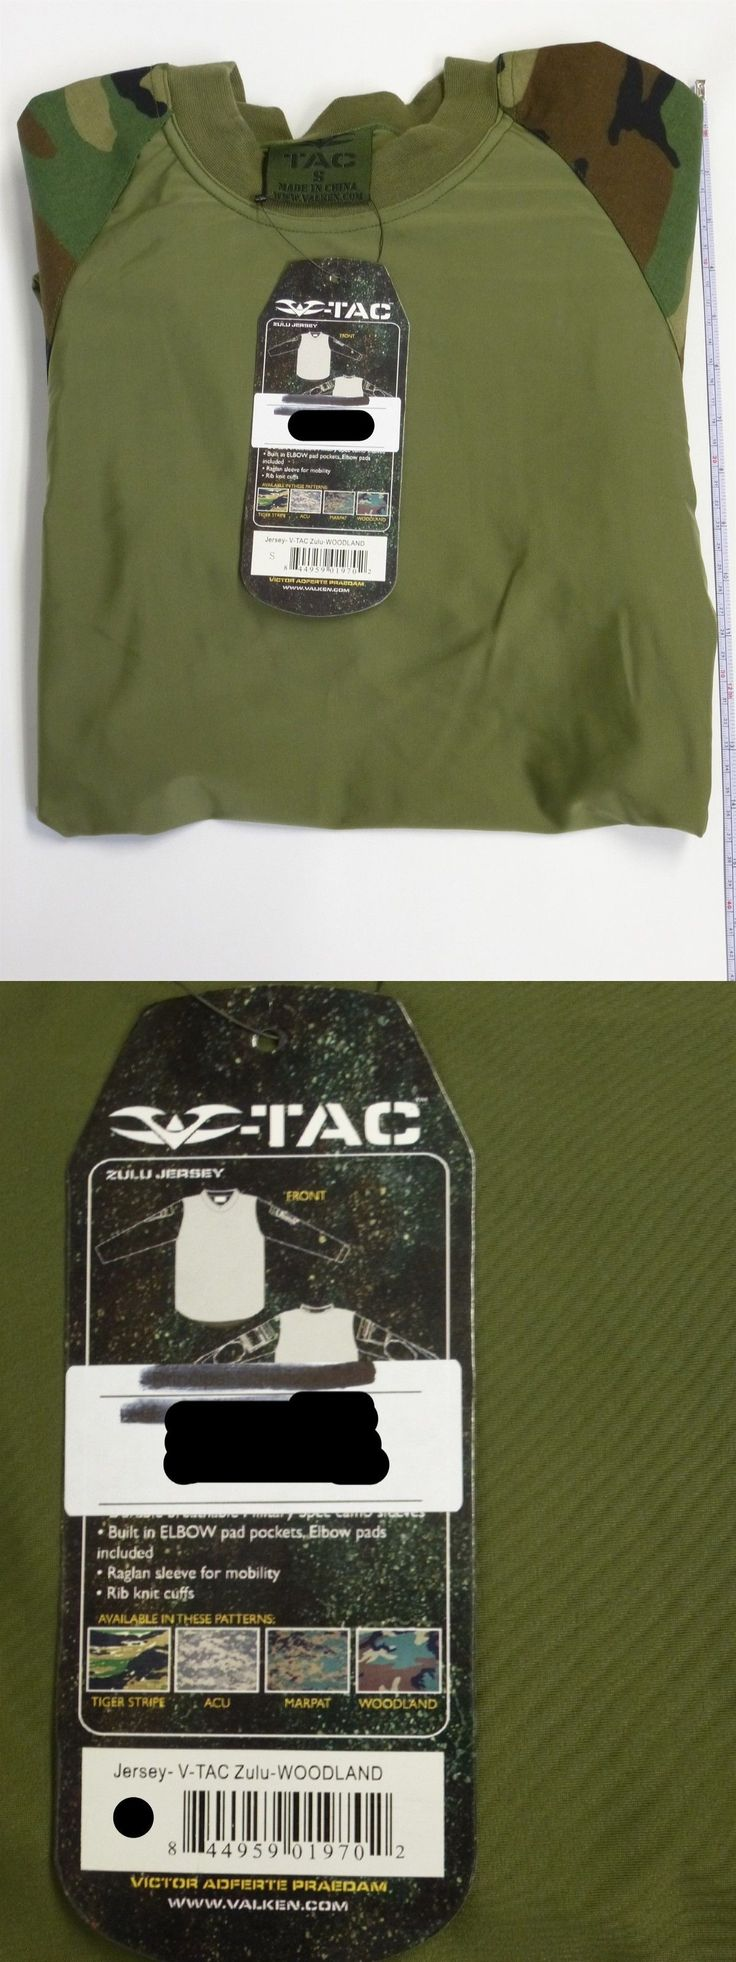 Jerseys and Shirts 165939: Valken V-Tac Paintball Jersey Zulu Woodland Small New -> BUY IT NOW ONLY: $58.99 on eBay!